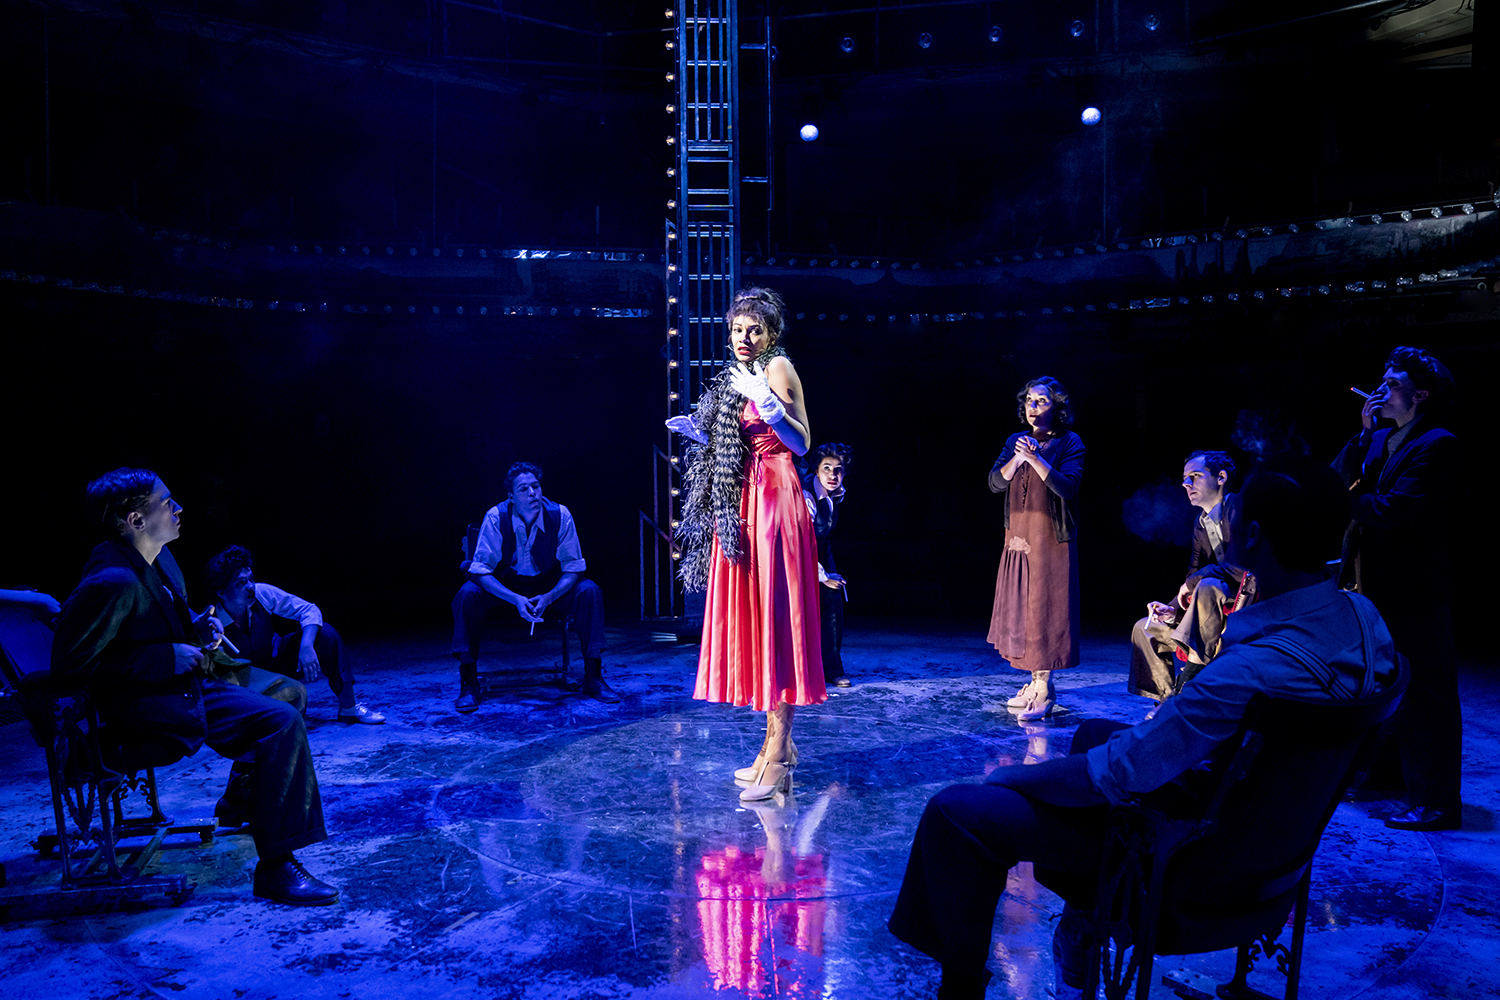 Gypsy at Royal Exchange Theatre, Manchester. Design, Francis O'Connor; costume design, Gabrielle Dalton; lighting design, Colin Grenfell. Photo: Johan Persson.